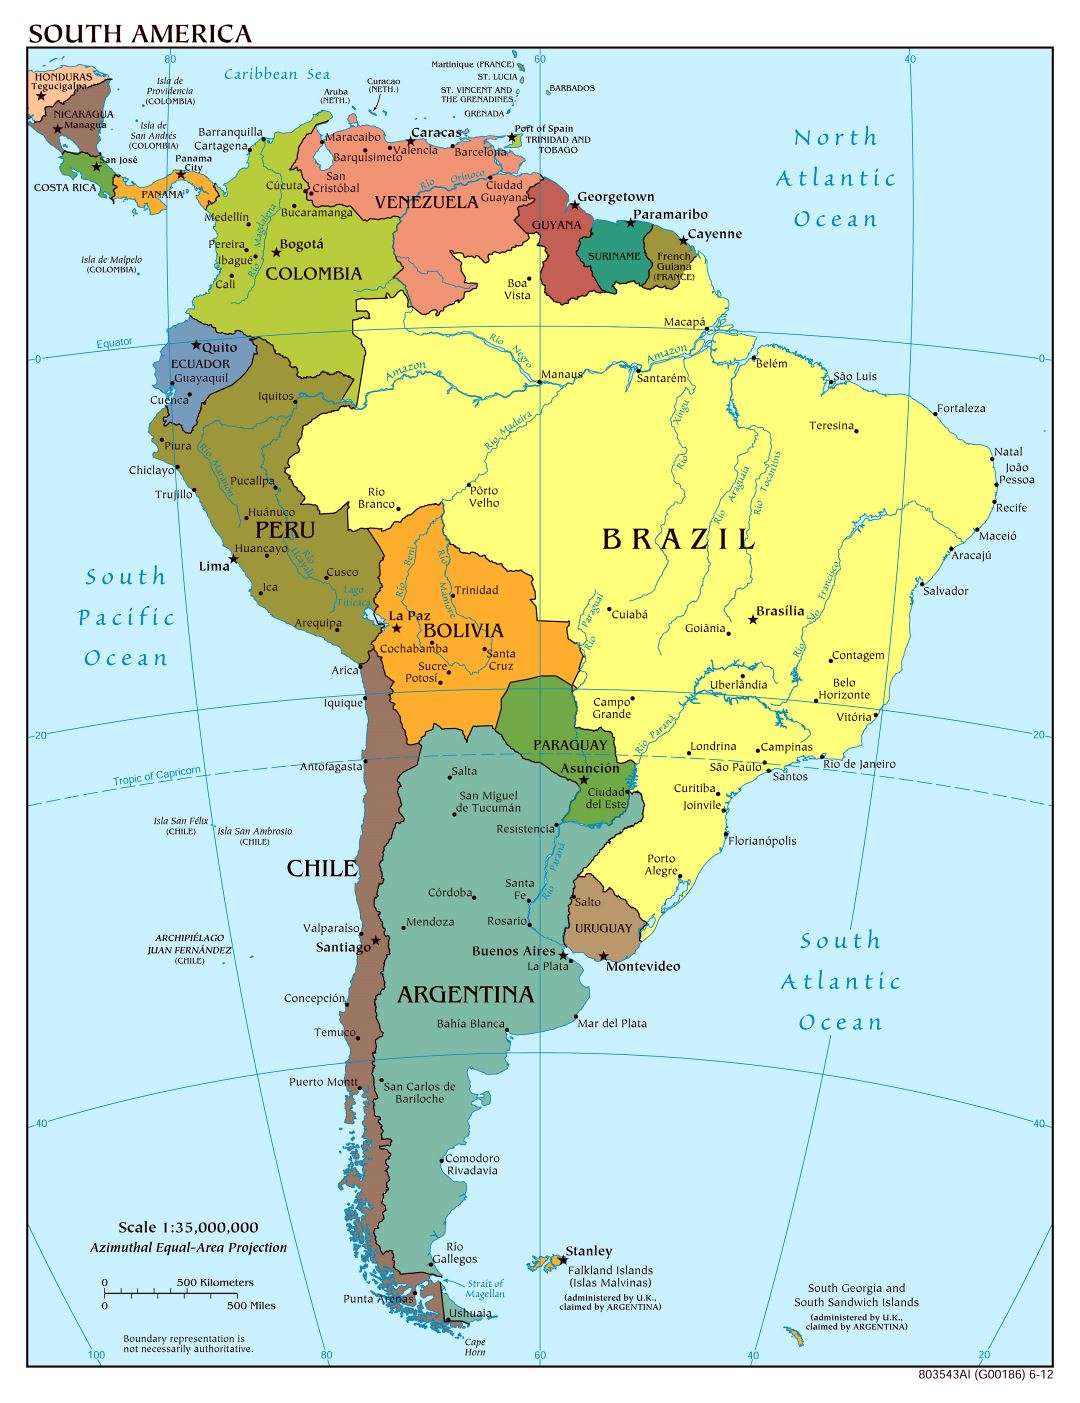 Large Scale Political Map Of South America With Major